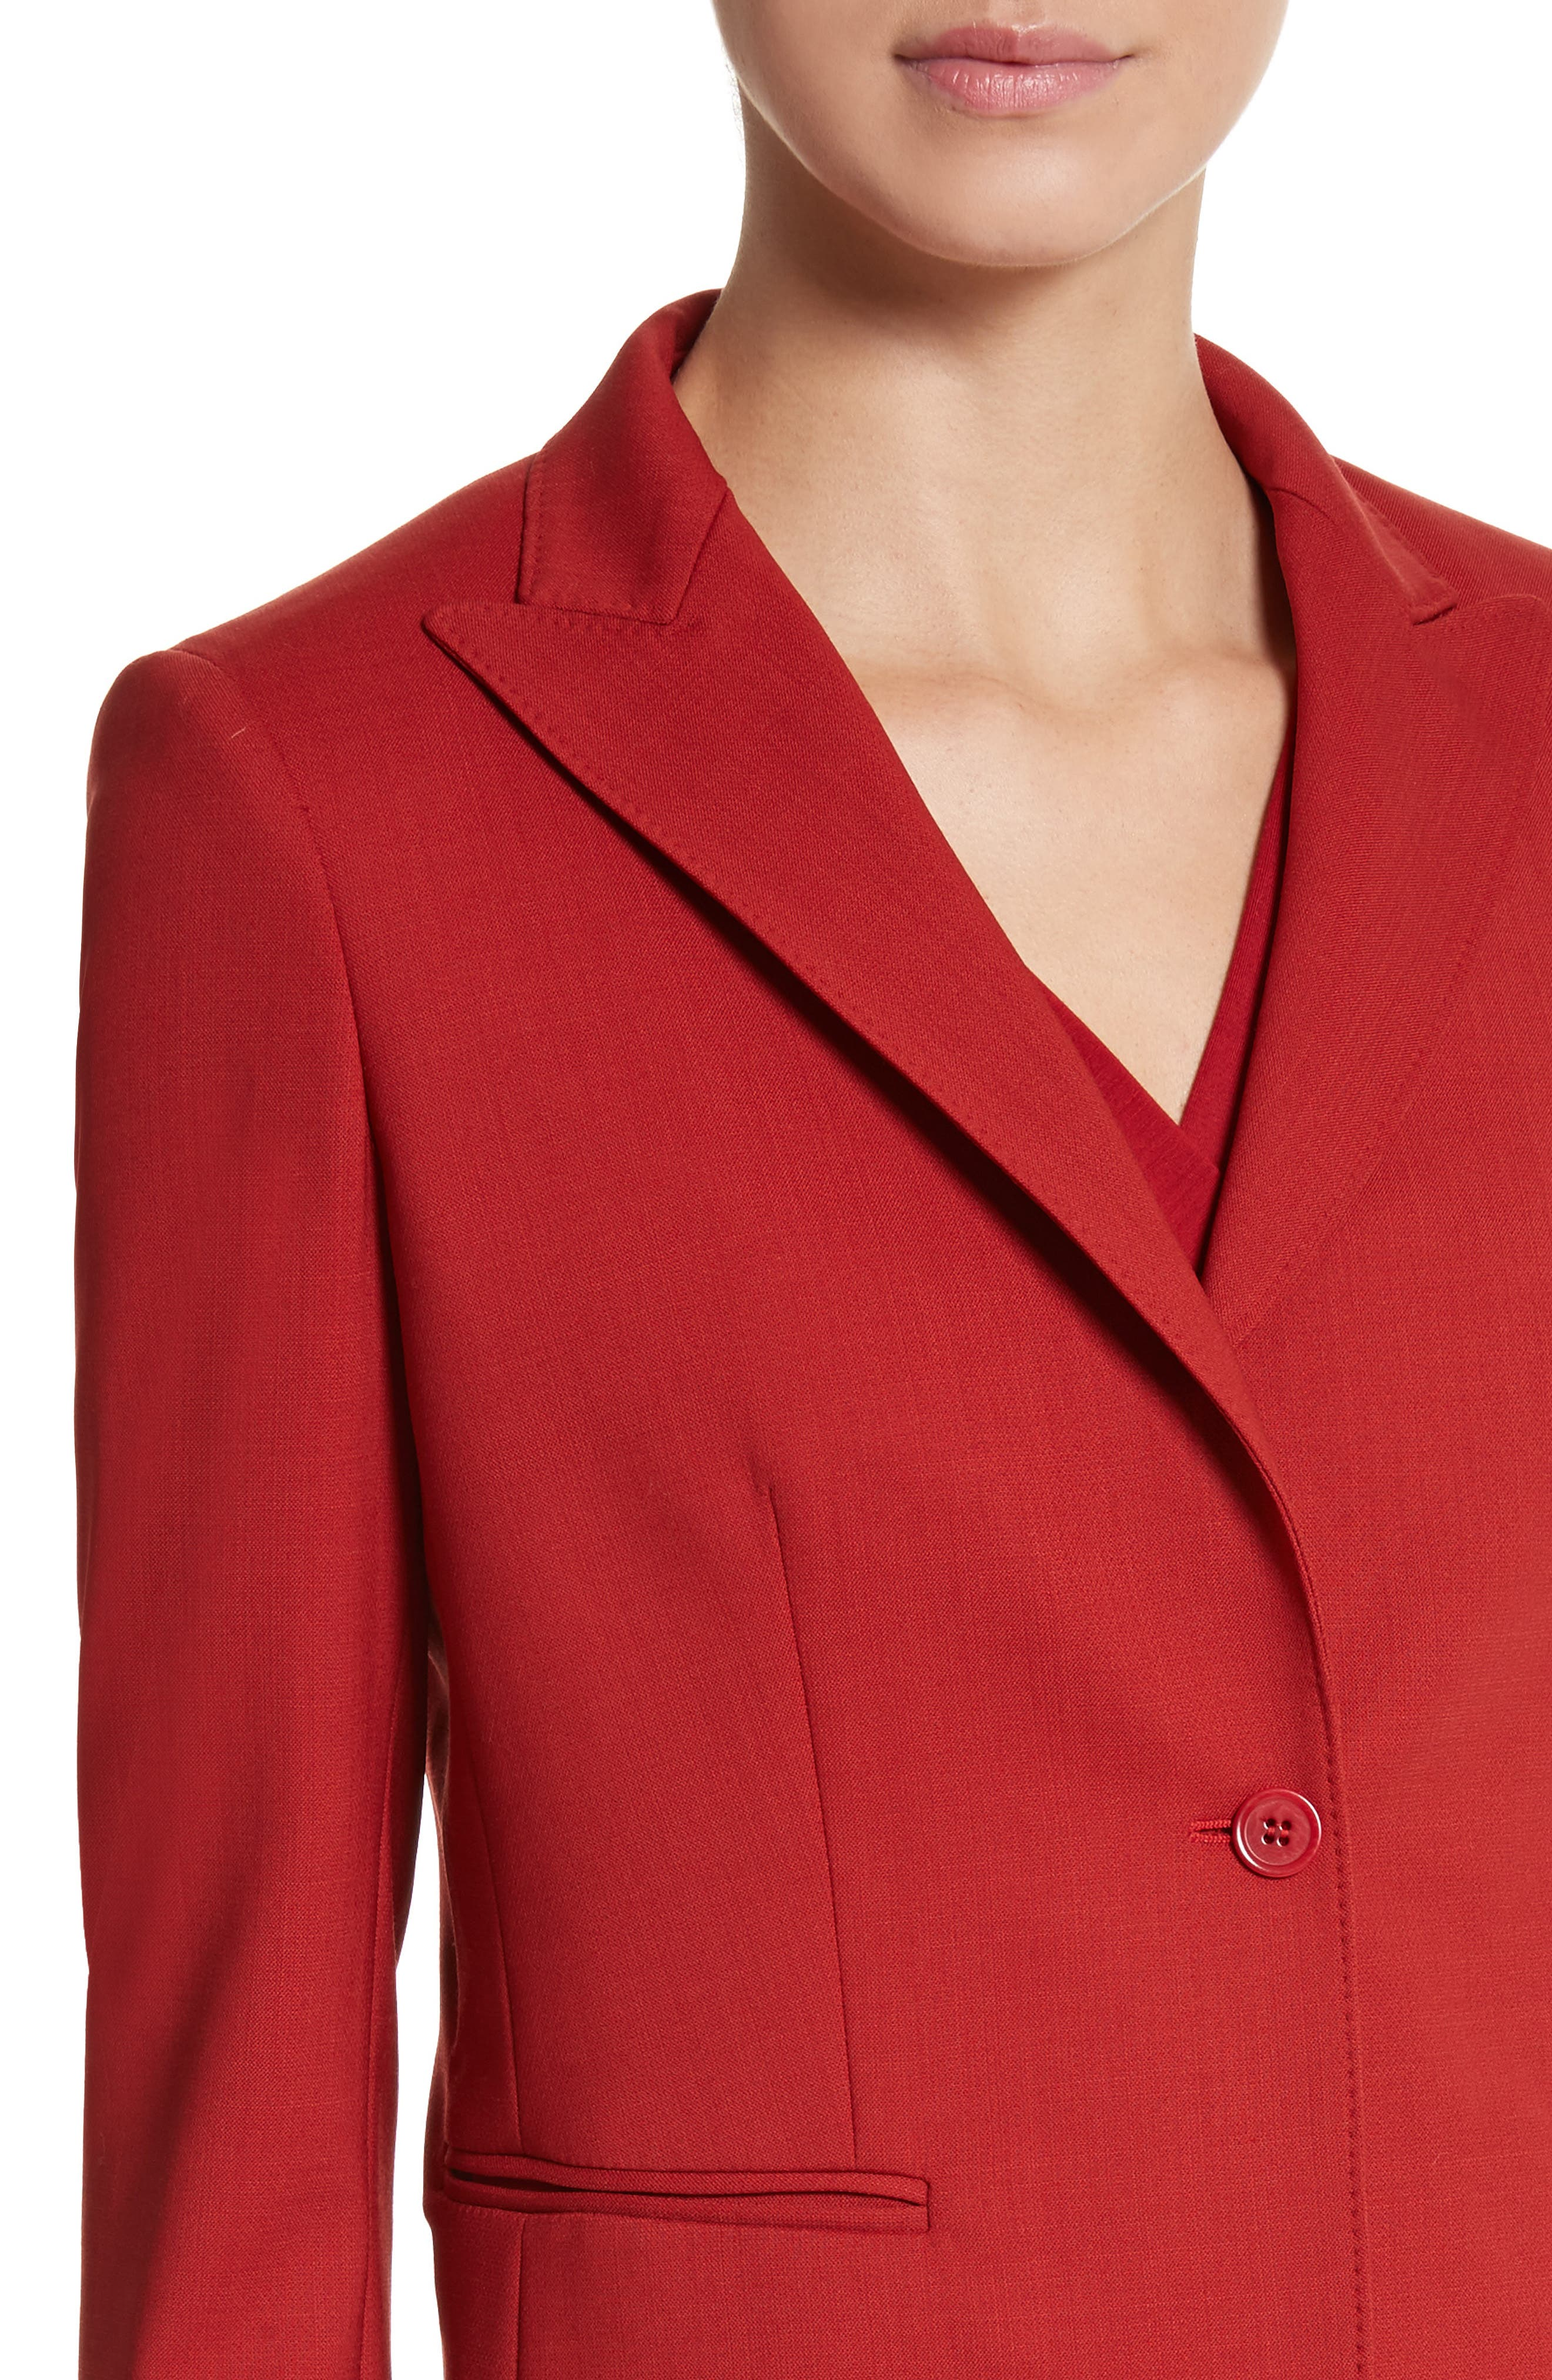 Umile Stretch Wool Jacket,                             Alternate thumbnail 4, color,                             614